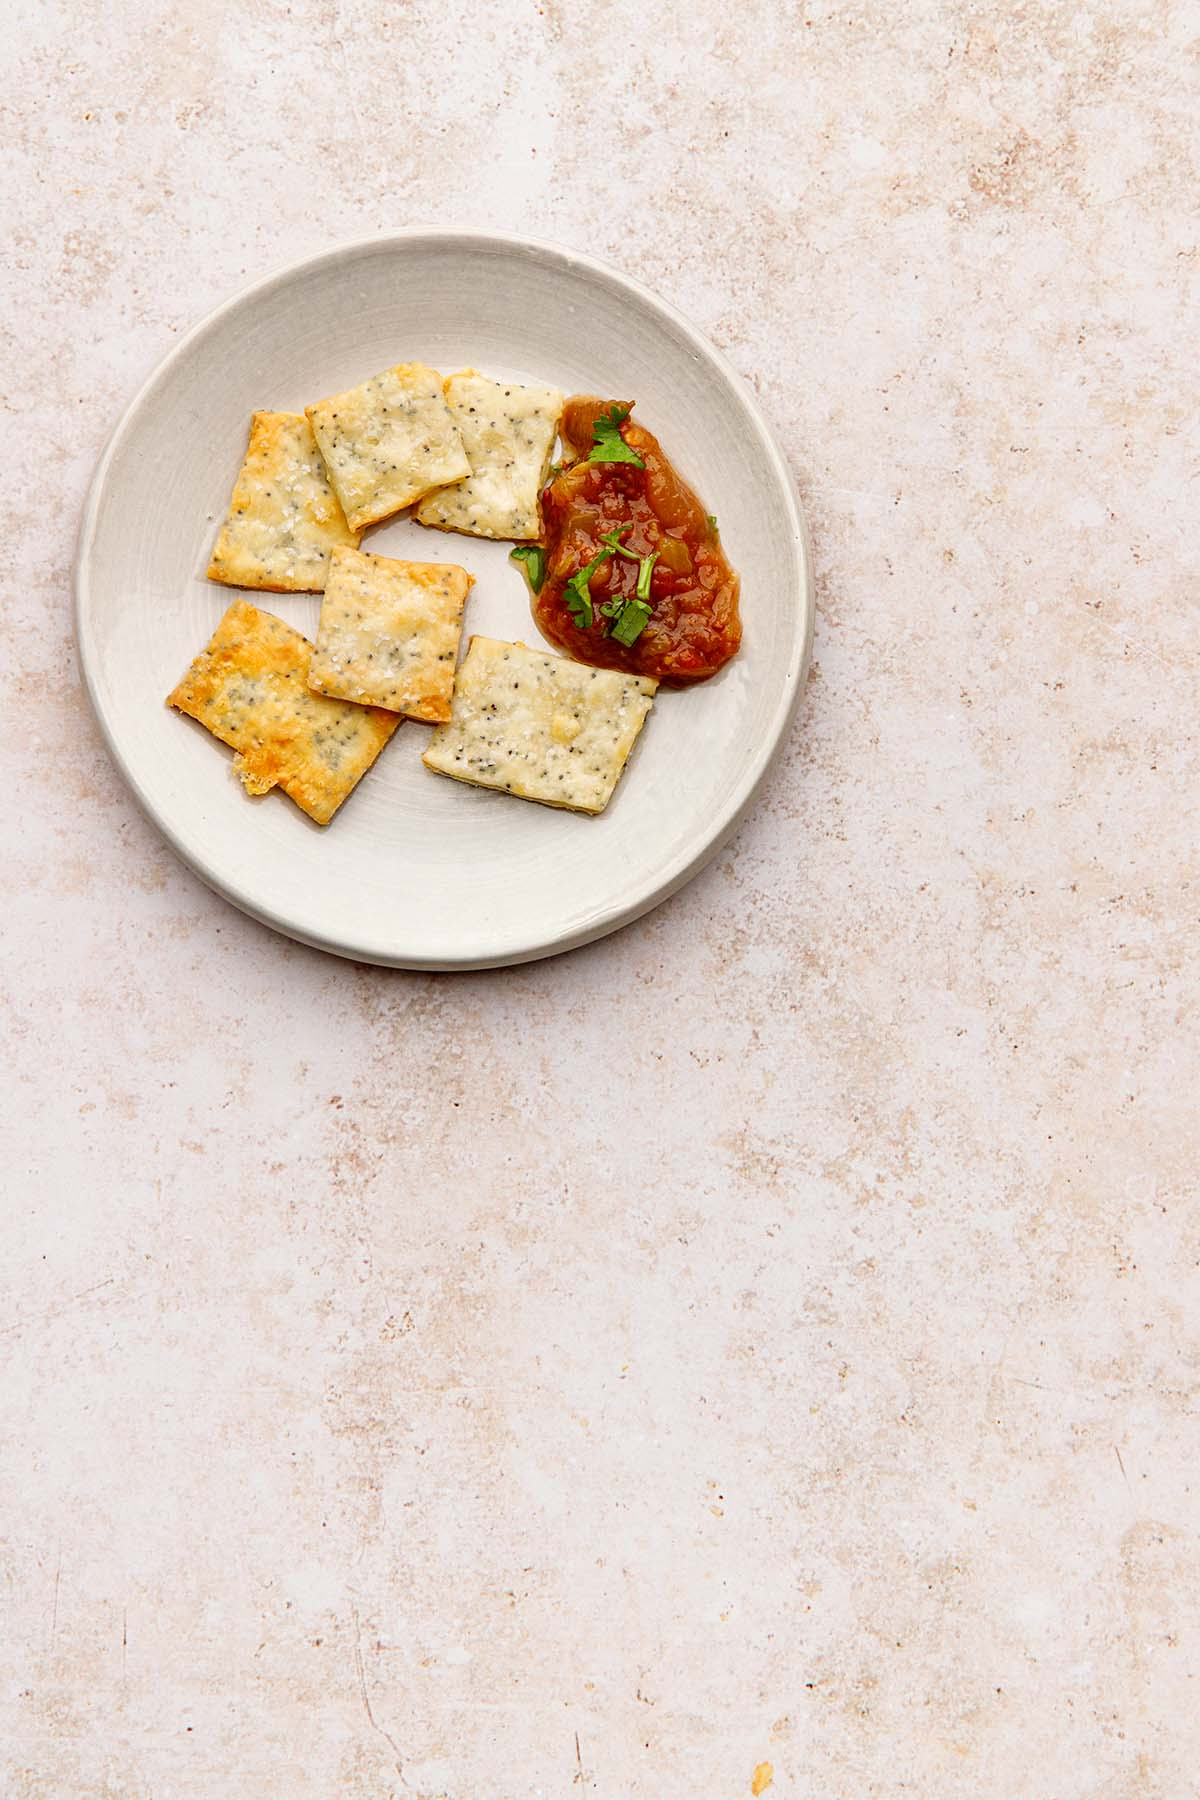 A plate of white cheddar crackers with a dollop of salsa on the side.